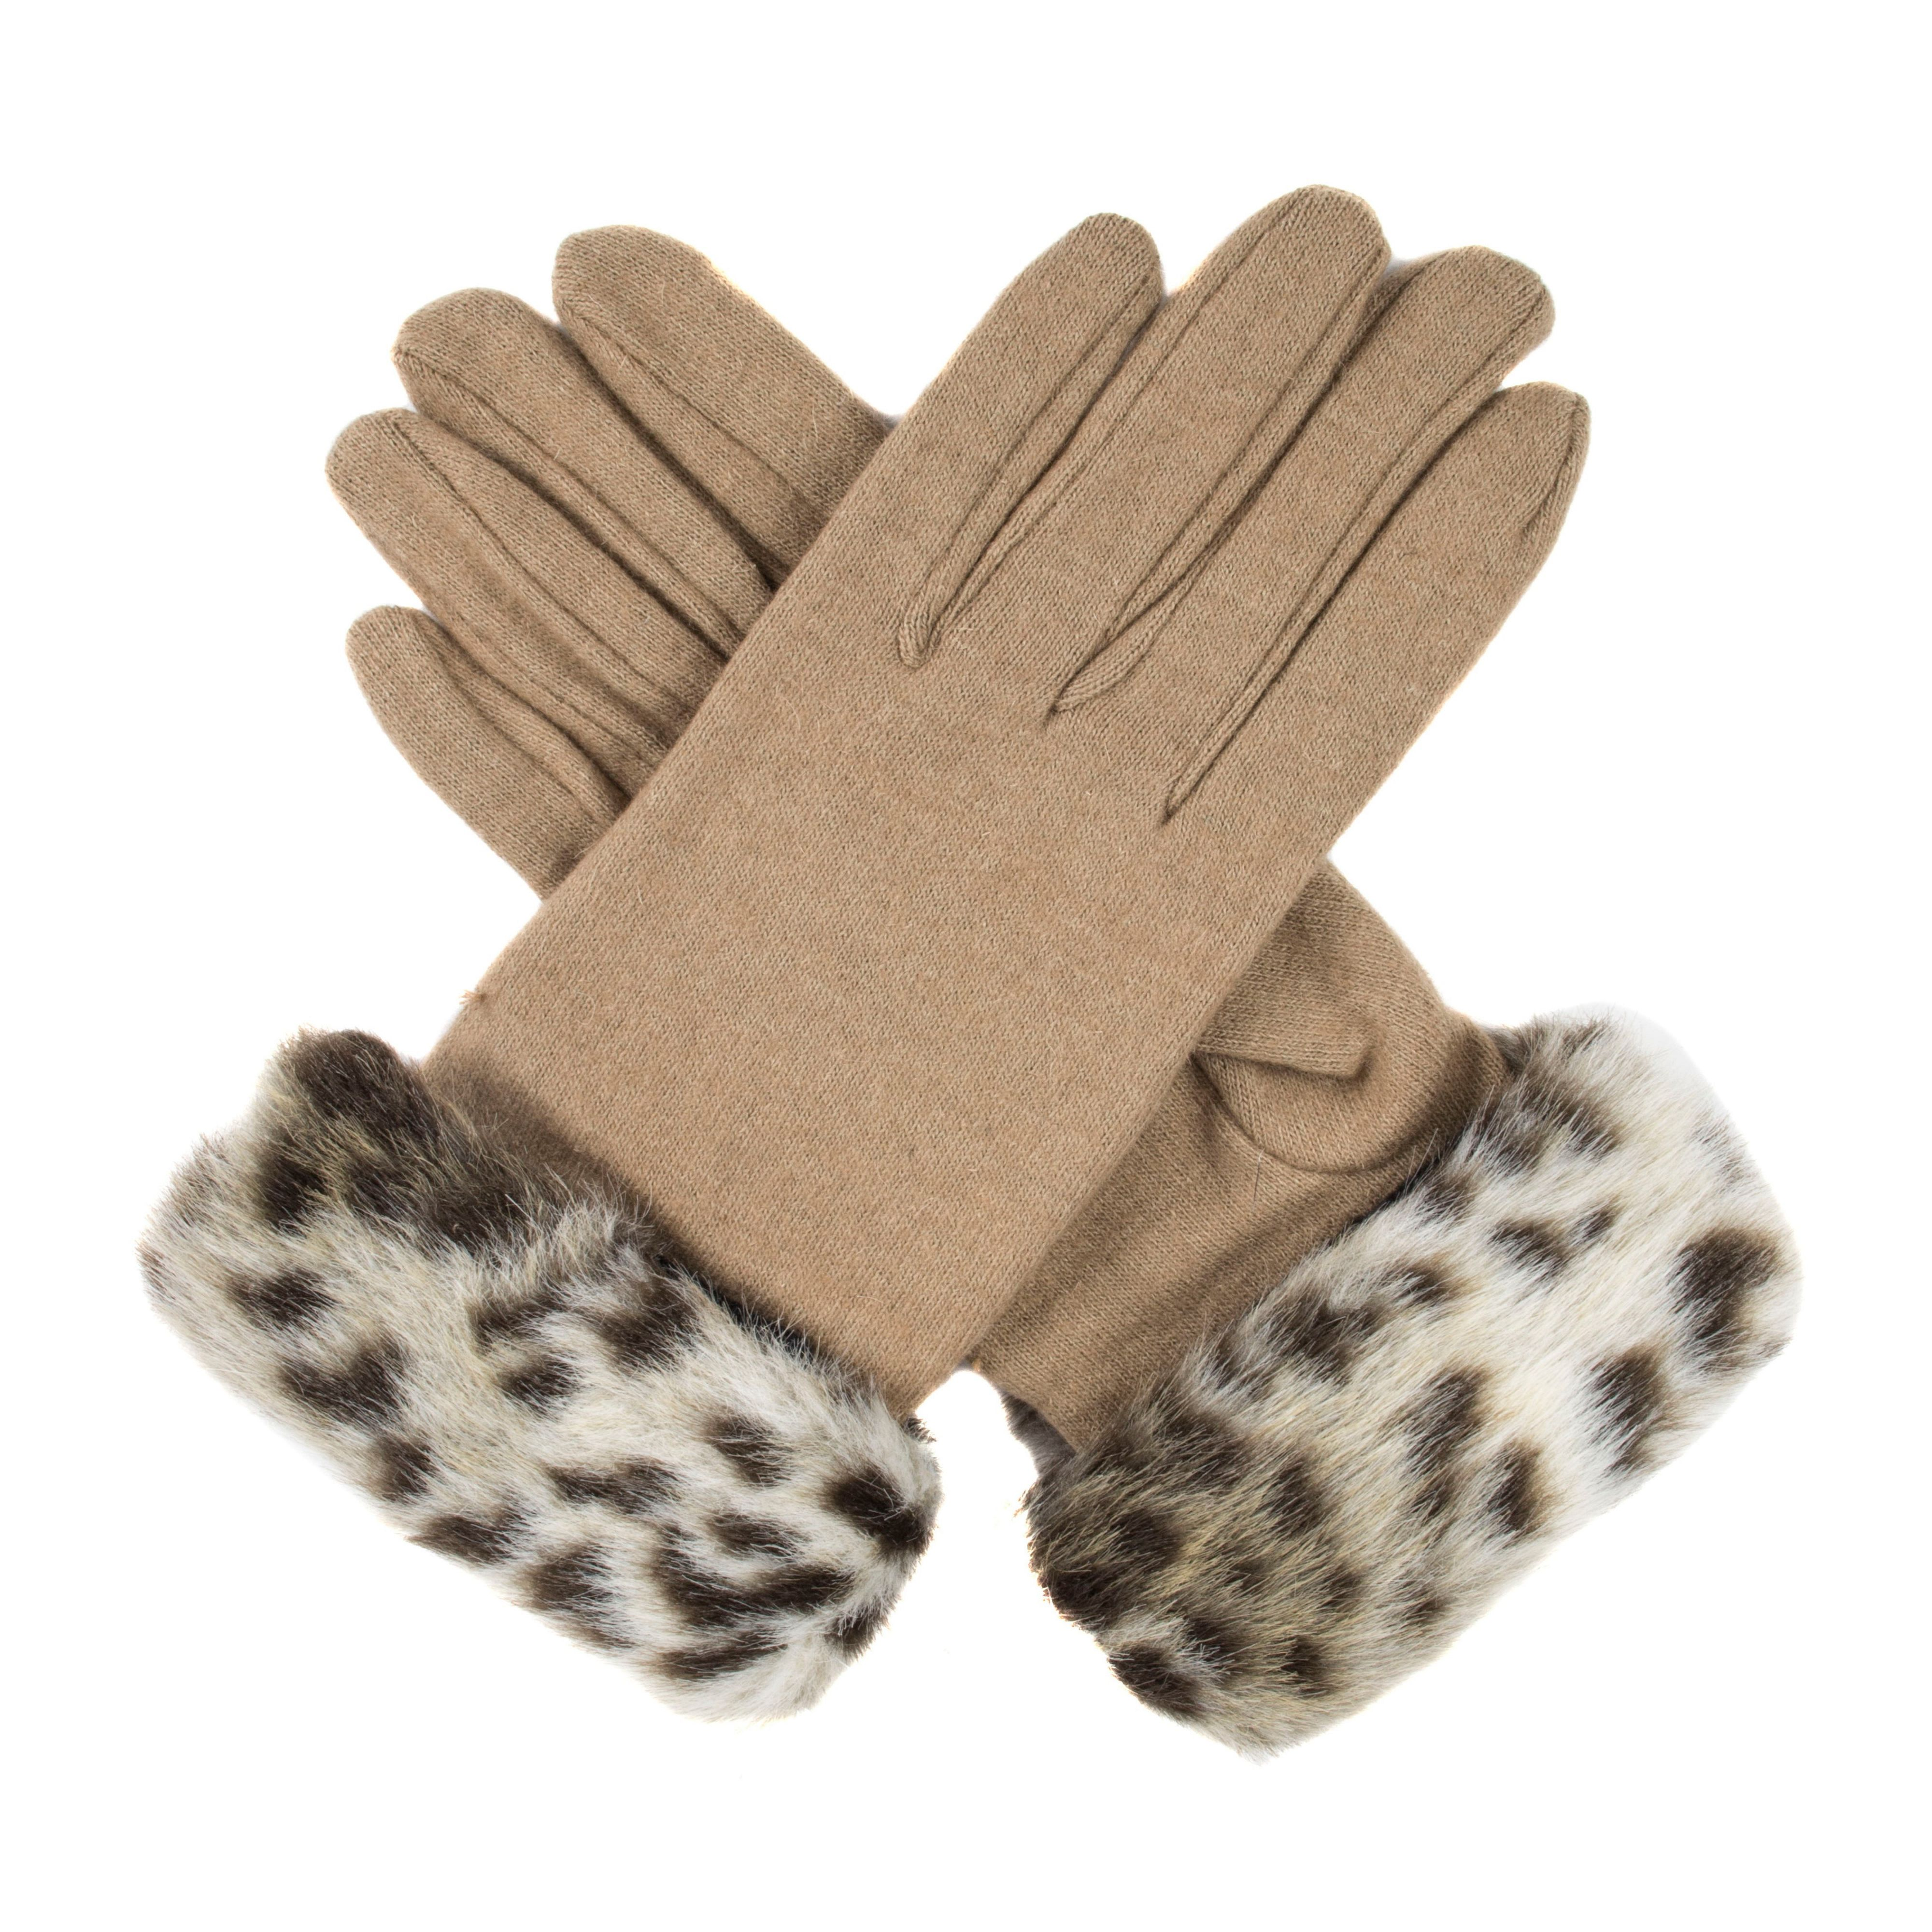 Vintage Style Gloves Dents Womens gloves with faux fur cuff Cream £12.80 AT vintagedancer.com